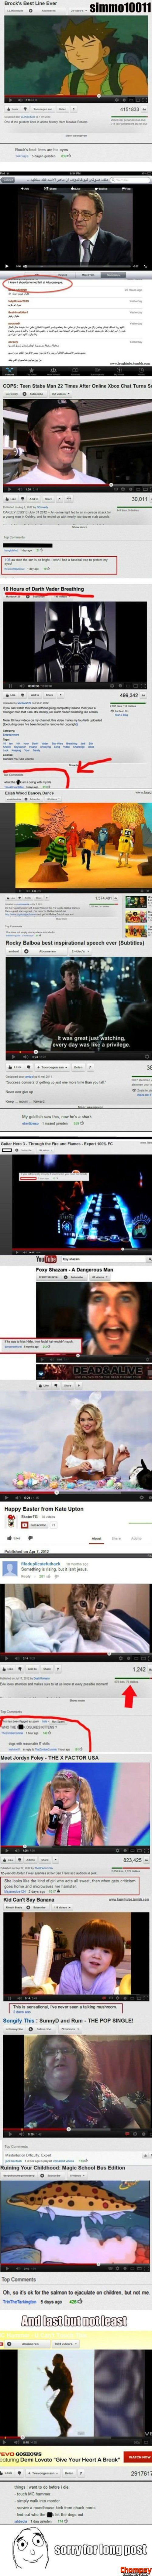 The Best Funny Youtube Comments Ideas On Pinterest Youtube - The 26 funniest youtube comments of all time